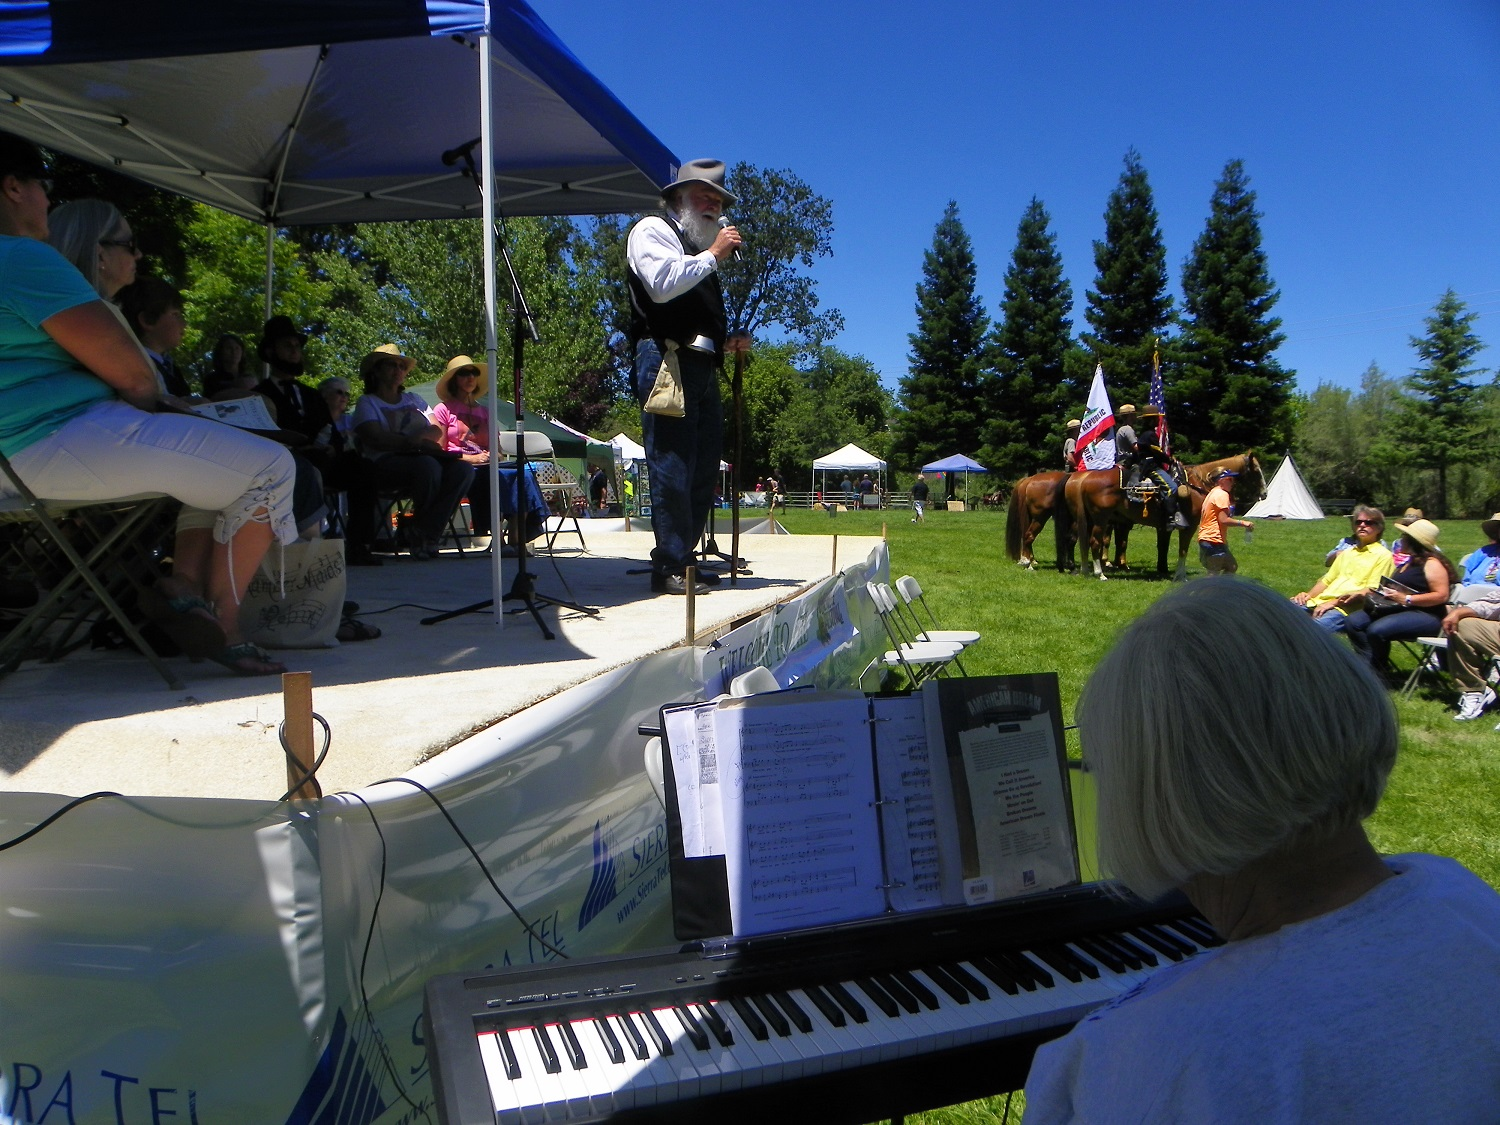 Yos Fest art - John Muir as portrayed by Frank Heller with Jackie Byers on piano - photo by Kellie Flanagan